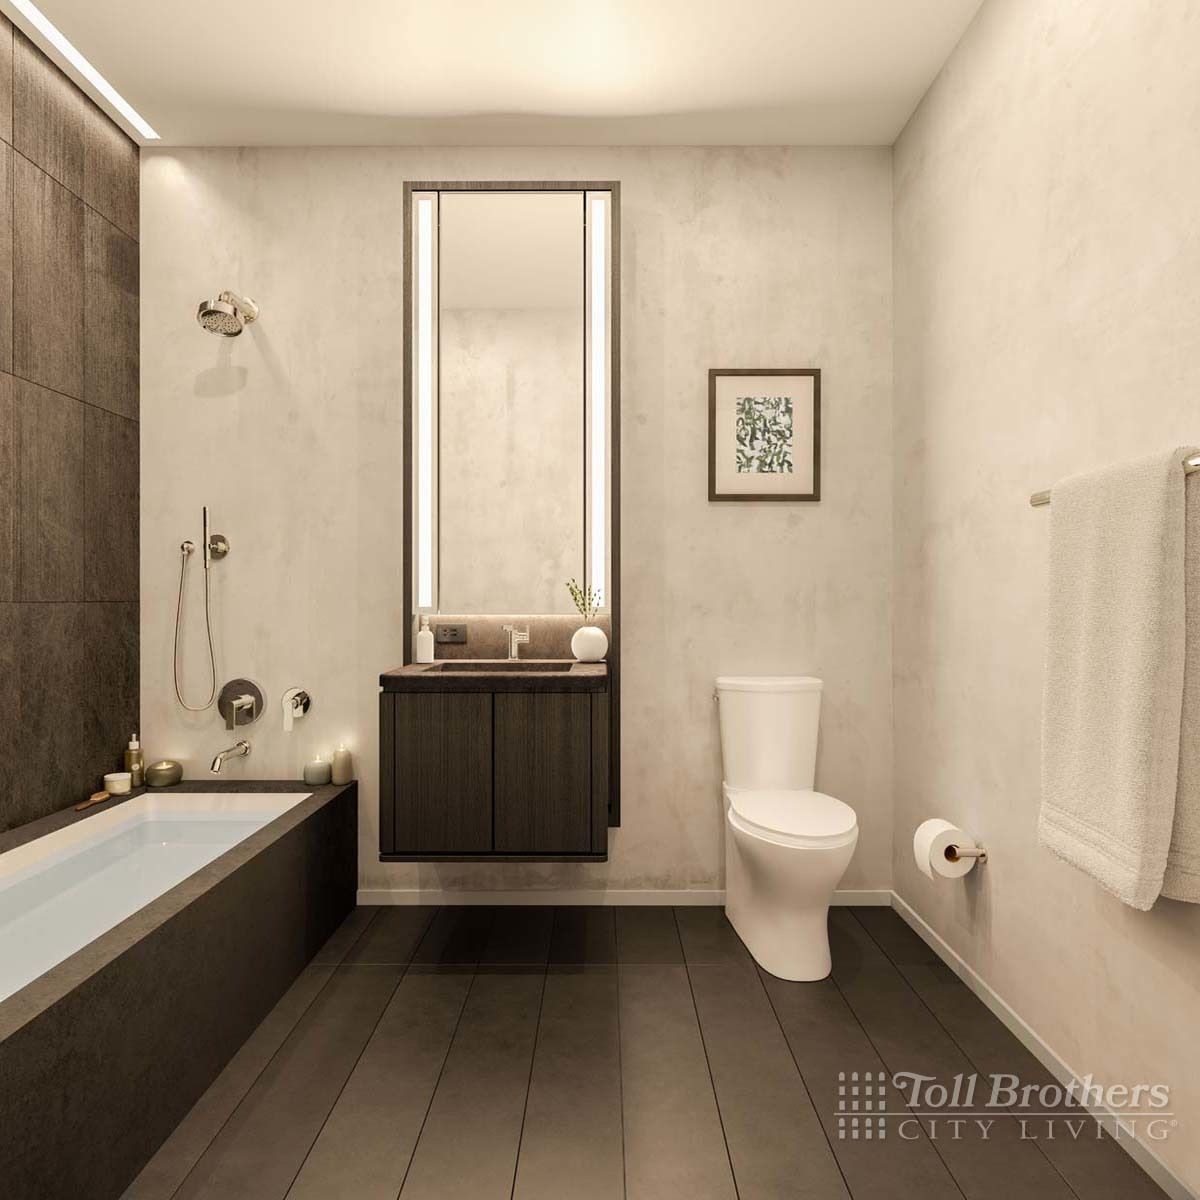 Bathroom featured in the S12B By Toll Brothers in New York, NY